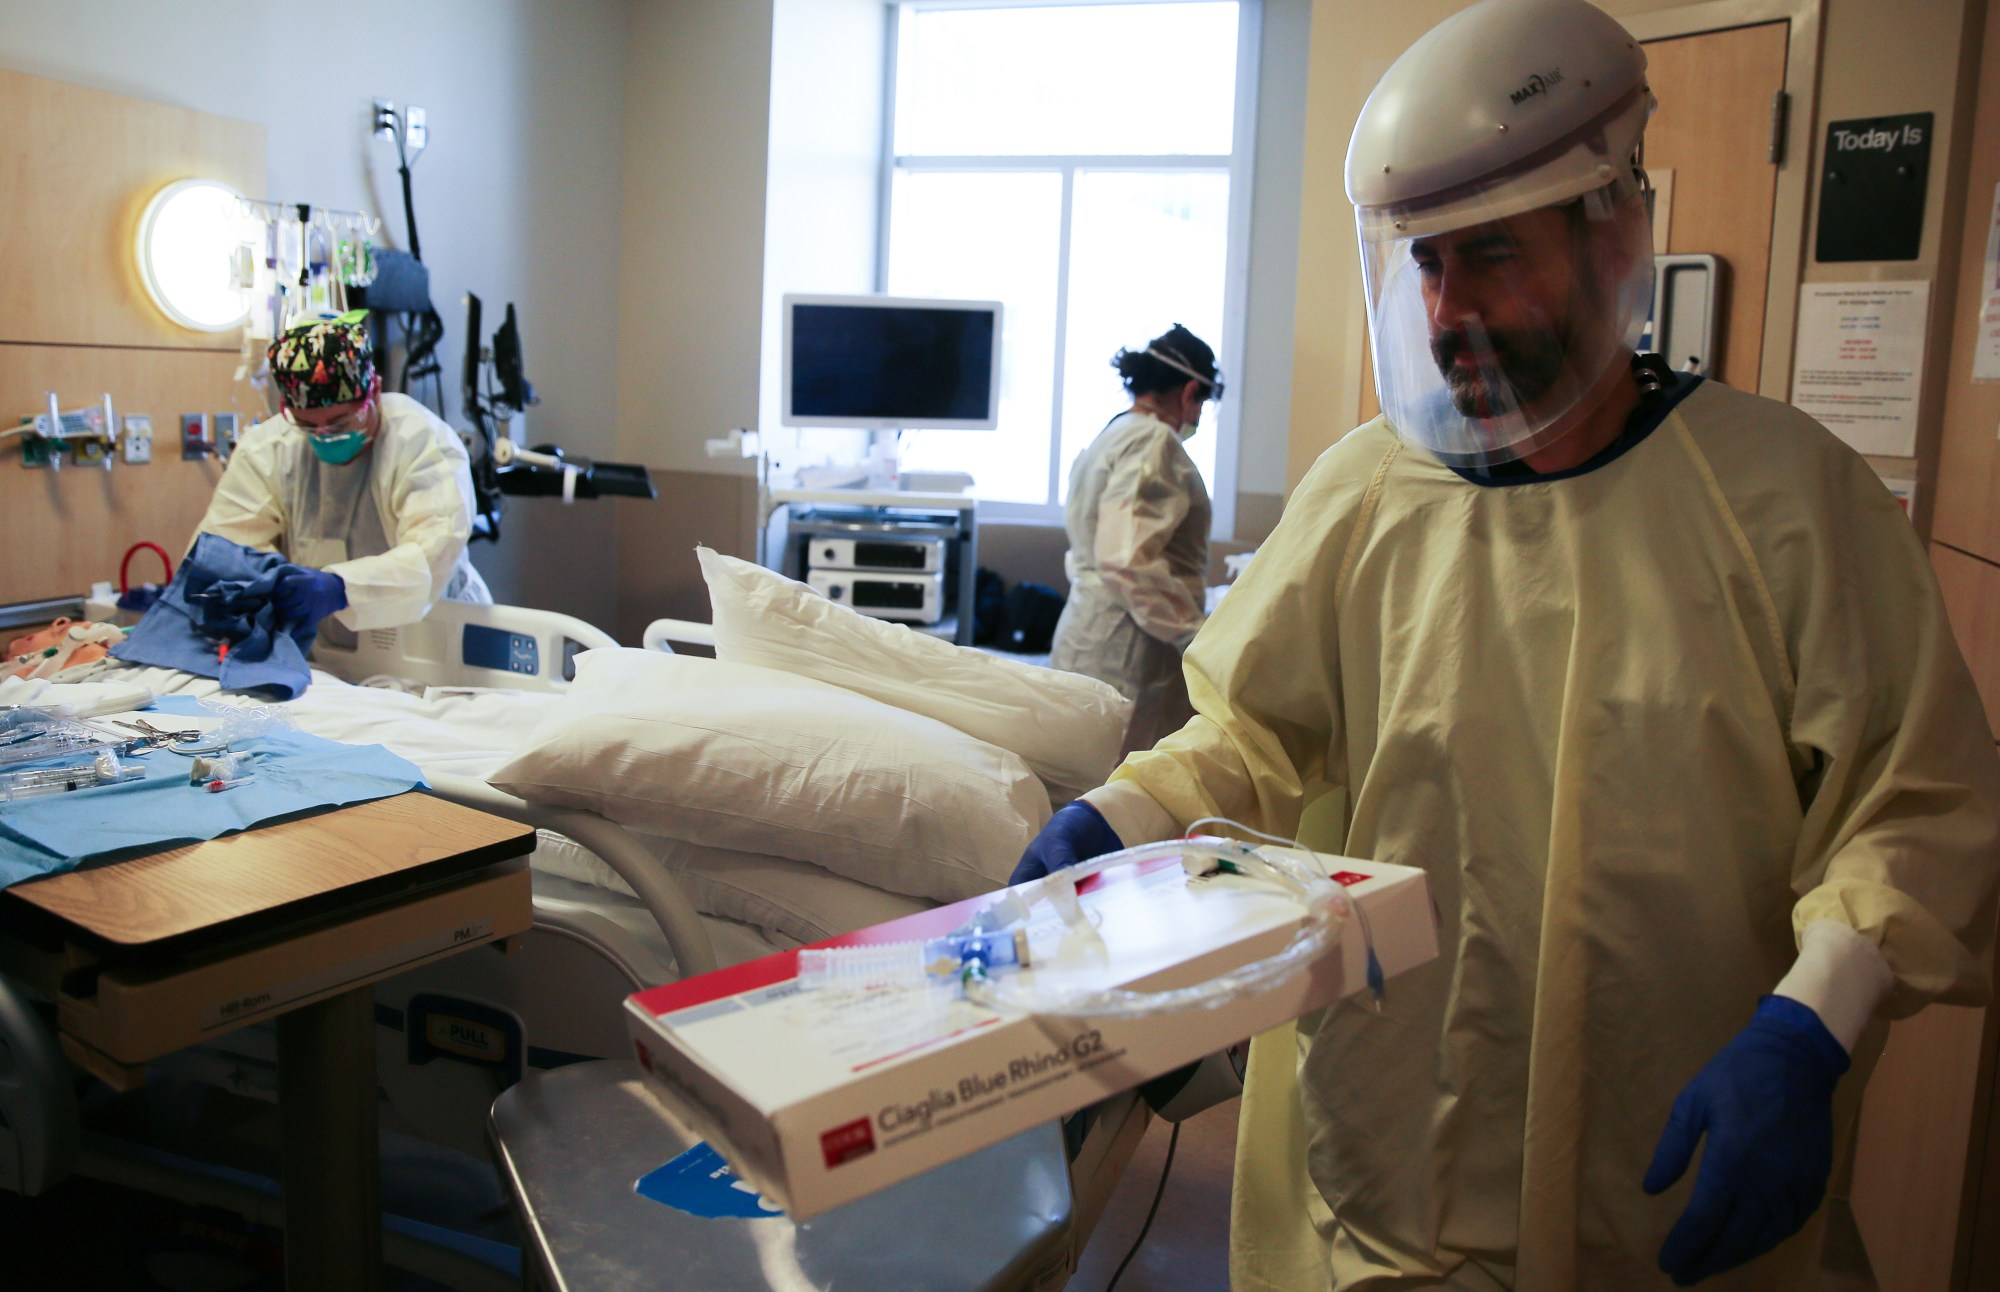 Clinicians work after performing a tracheostomy on a patient in a COVID-19 ICU at Providence Holy Cross Medical Center in Mission Hills on Feb. 17, 2021. (Mario Tama/Getty Images)